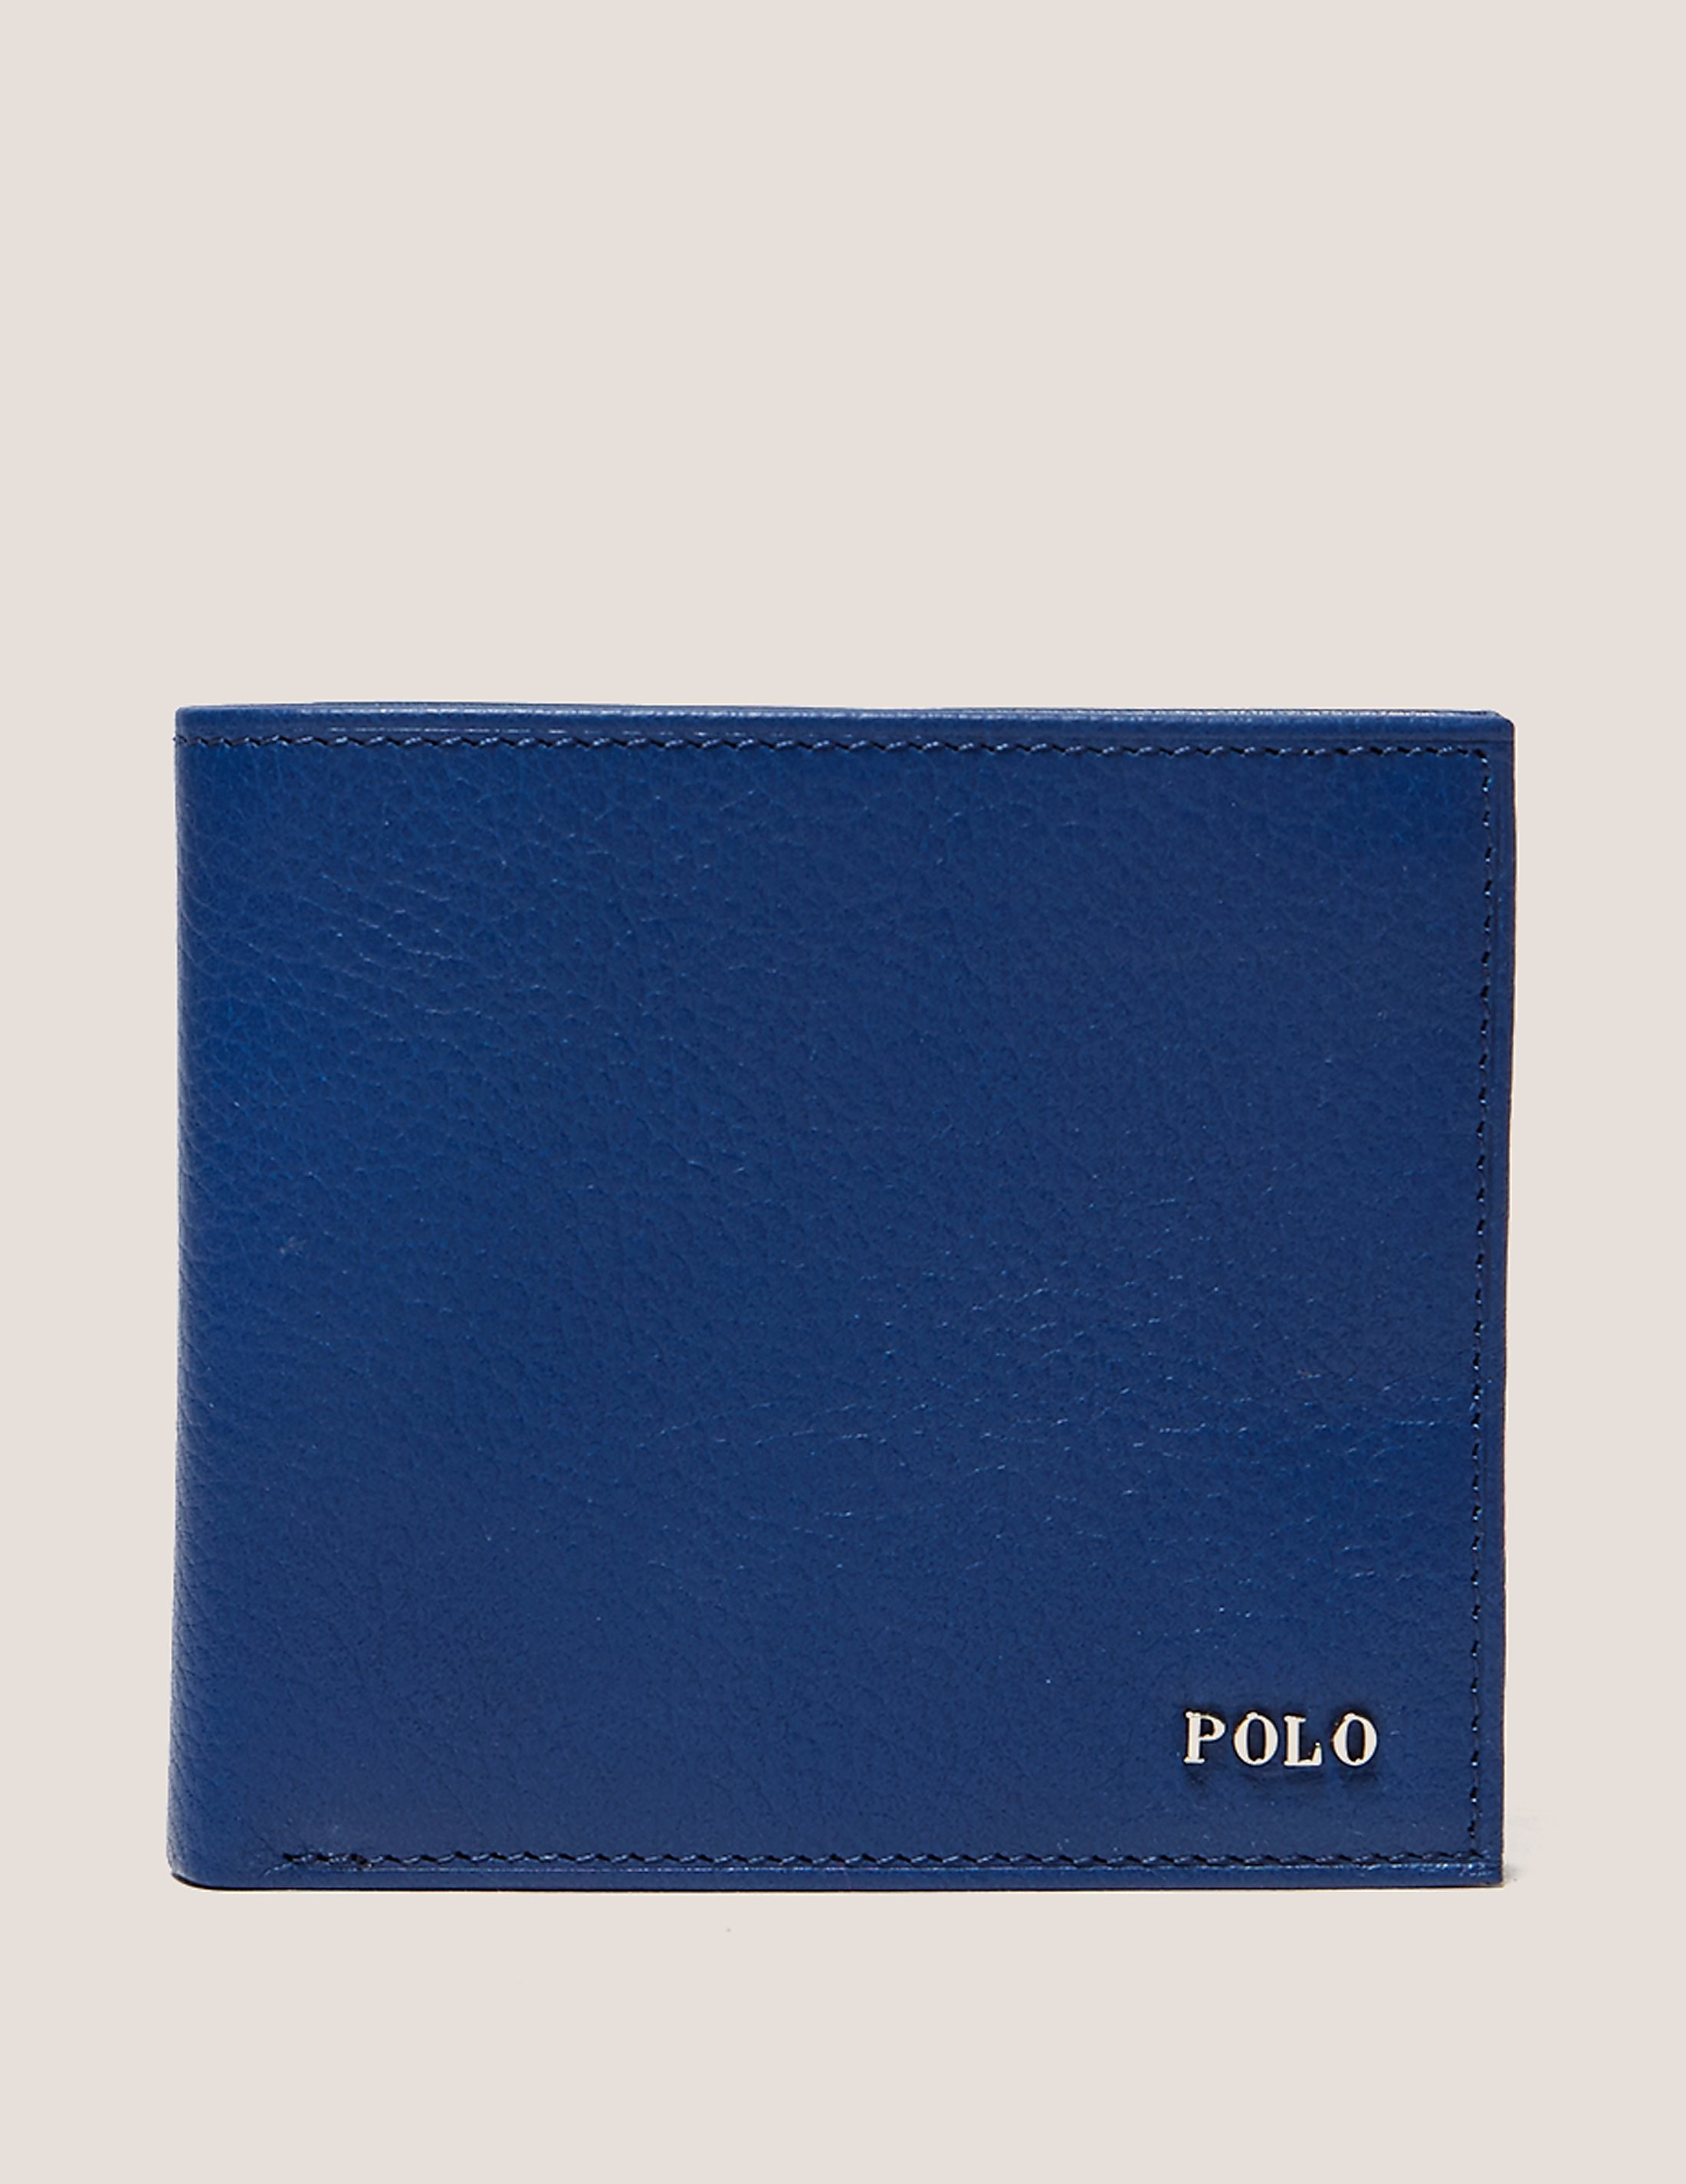 Polo Ralph Lauren Leather Billfold Wallet